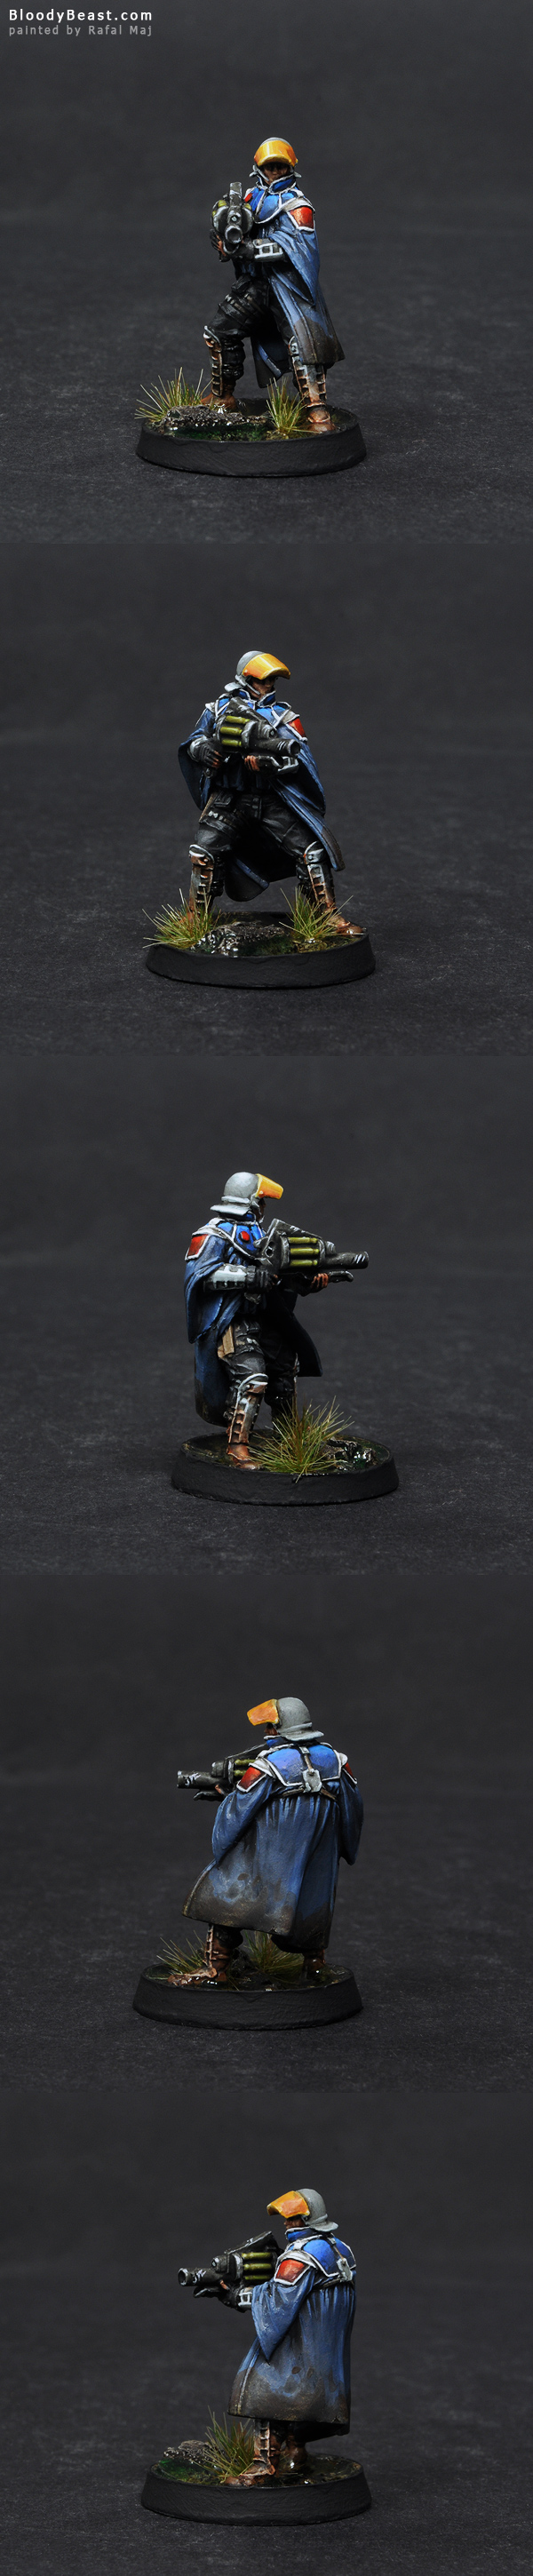 Ariadna Loup-Garous ADHL painted by Rafal Maj (BloodyBeast.com)